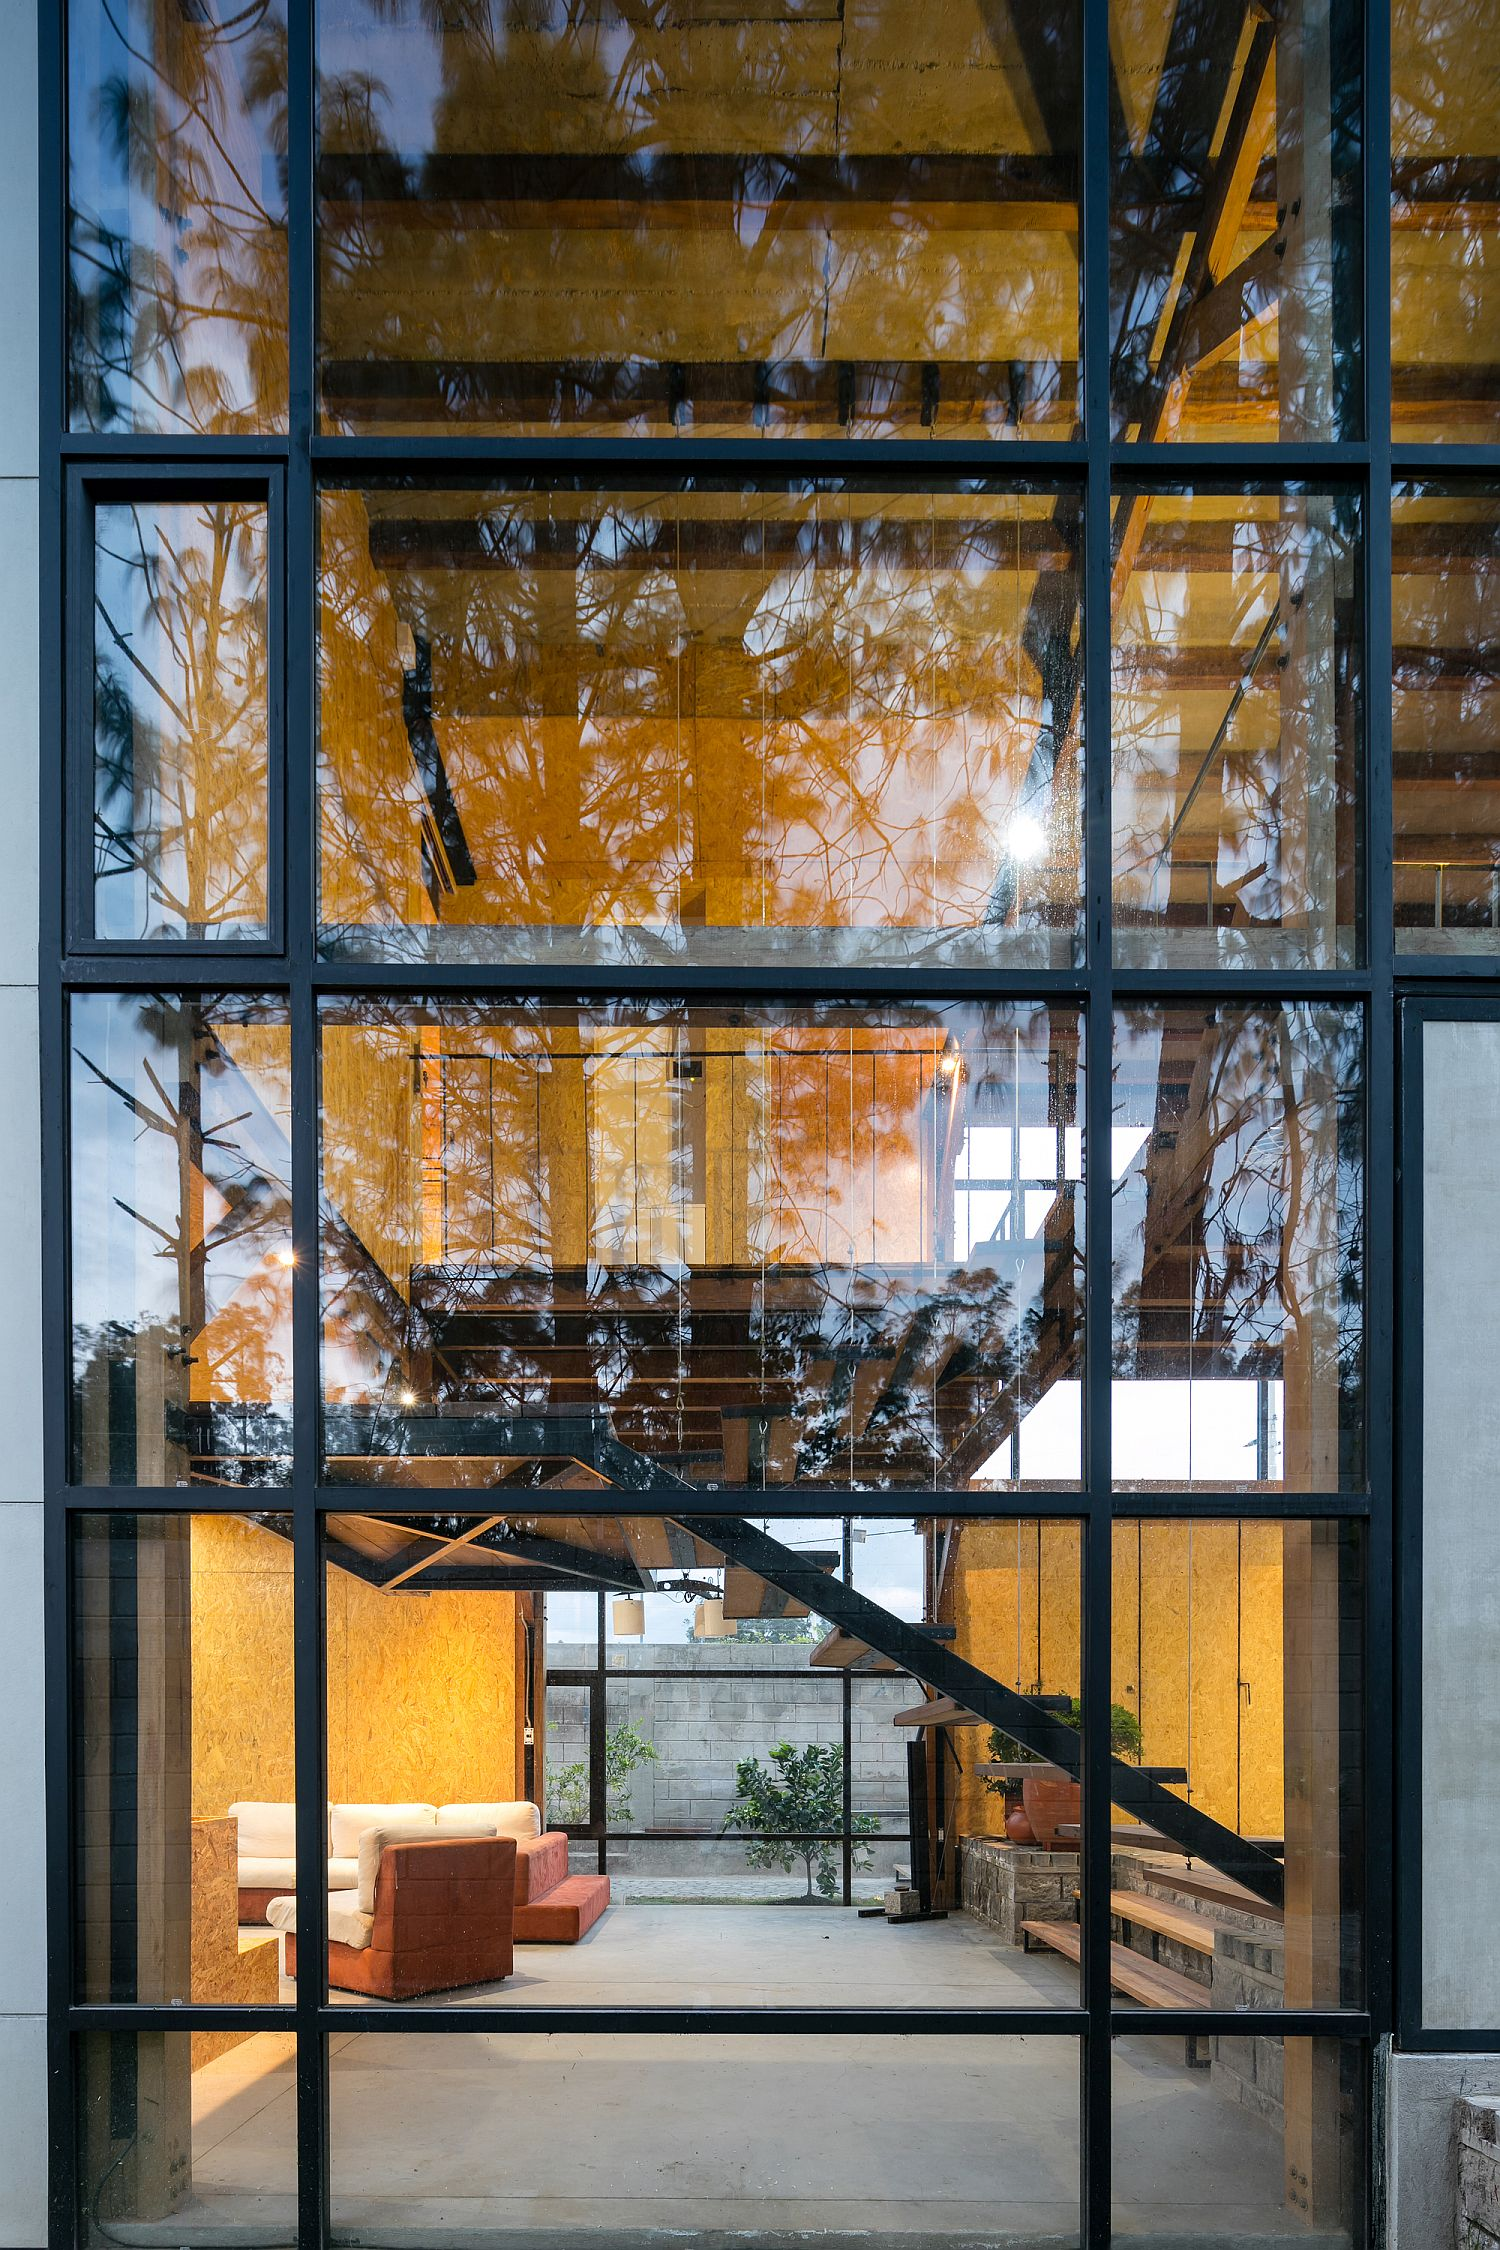 Large glass windows with metallic frame bring the outdoors inside